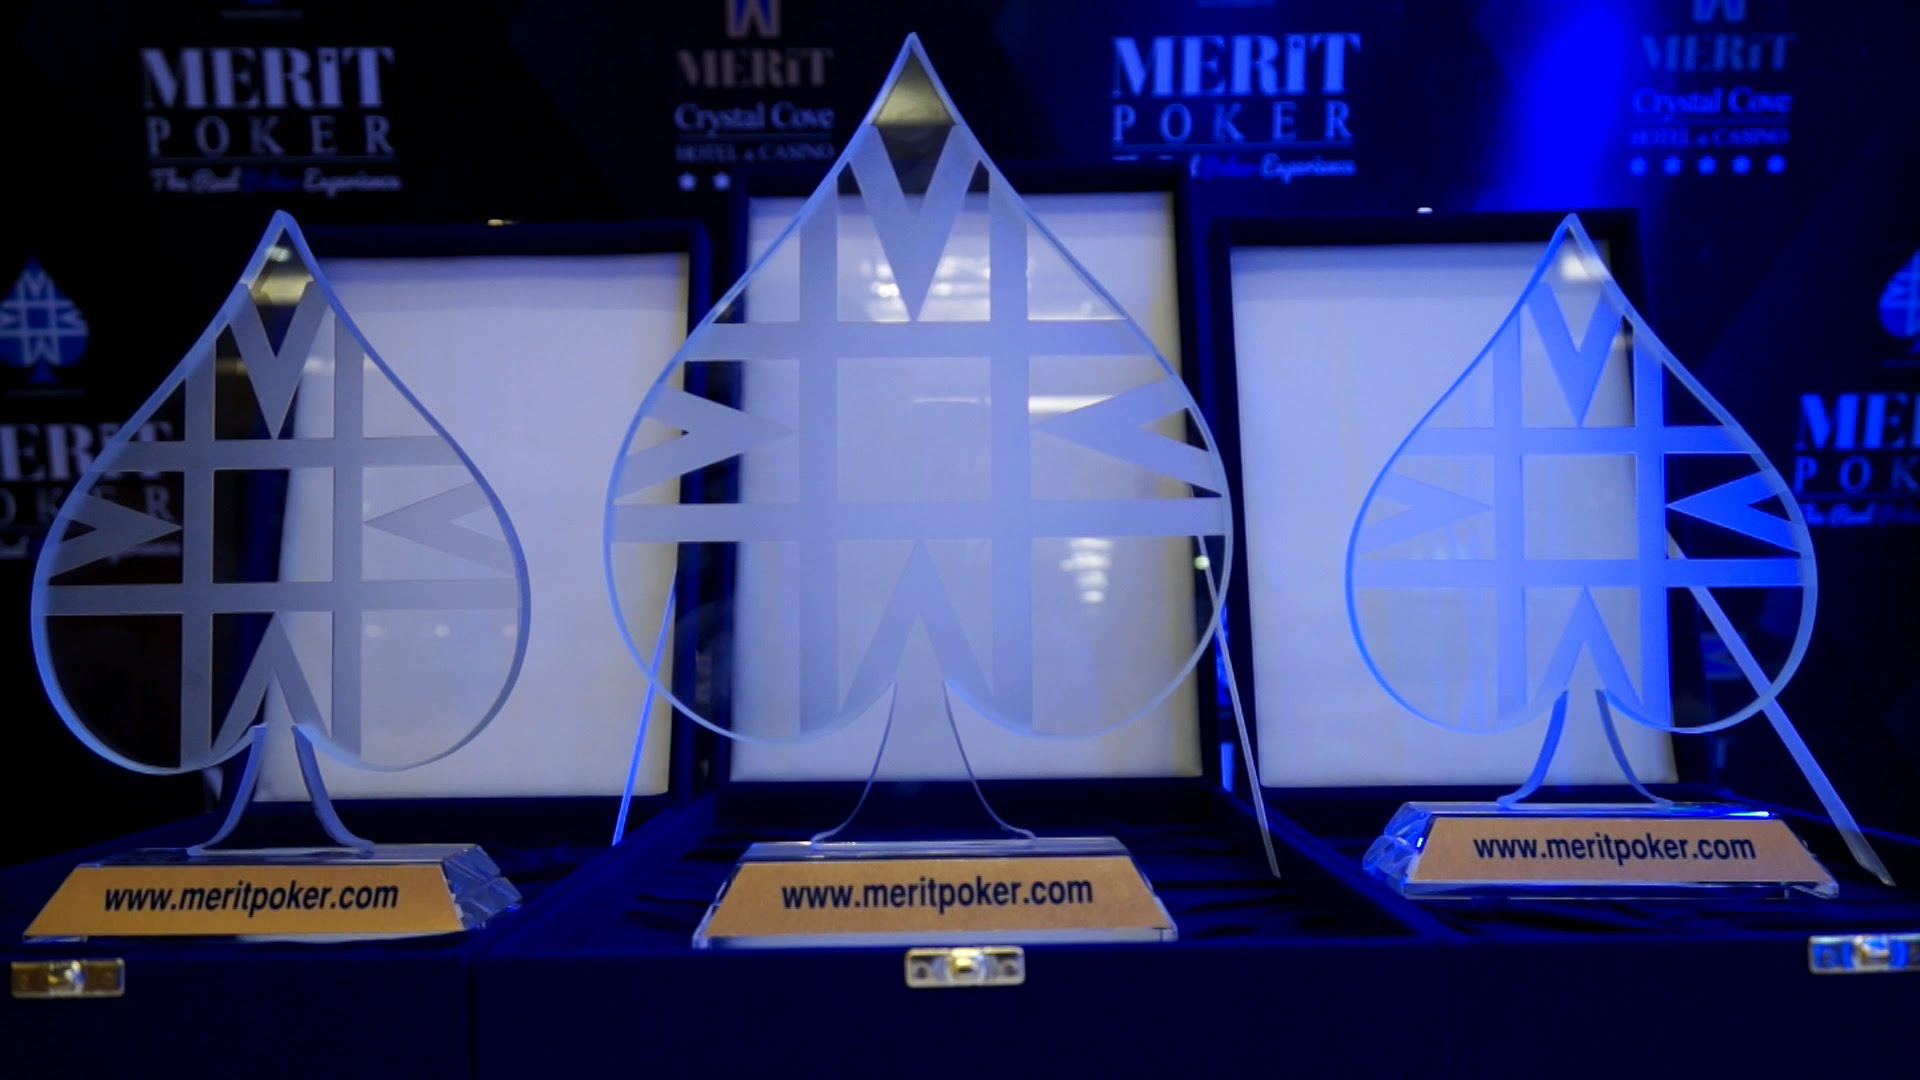 MERIT POKER Gangsters Poker Cup «Main Event & High Roller Final day»